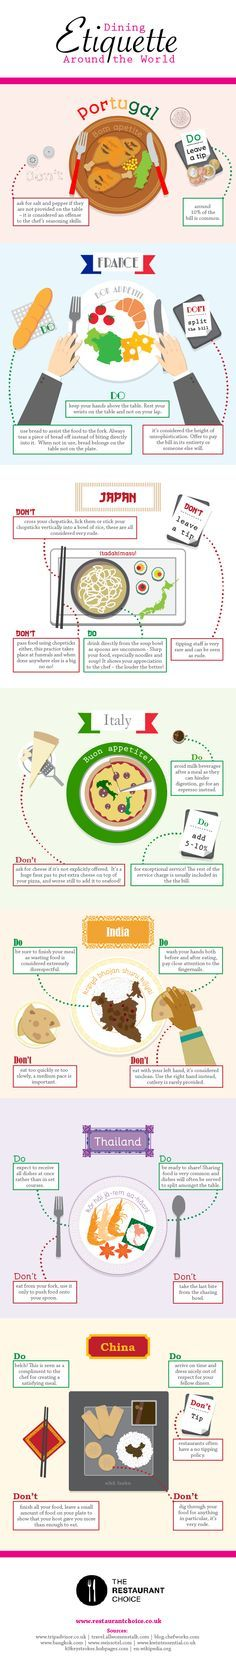 Travel and Trip infographic Dining etiquette around the world. Infographic Description Dining Etiquette Around the World - Infographic Source Places To Travel, Travel Destinations, Dining Etiquette, Table Manners, Journey, Tips & Tricks, Thinking Day, I Want To Travel, Future Travel